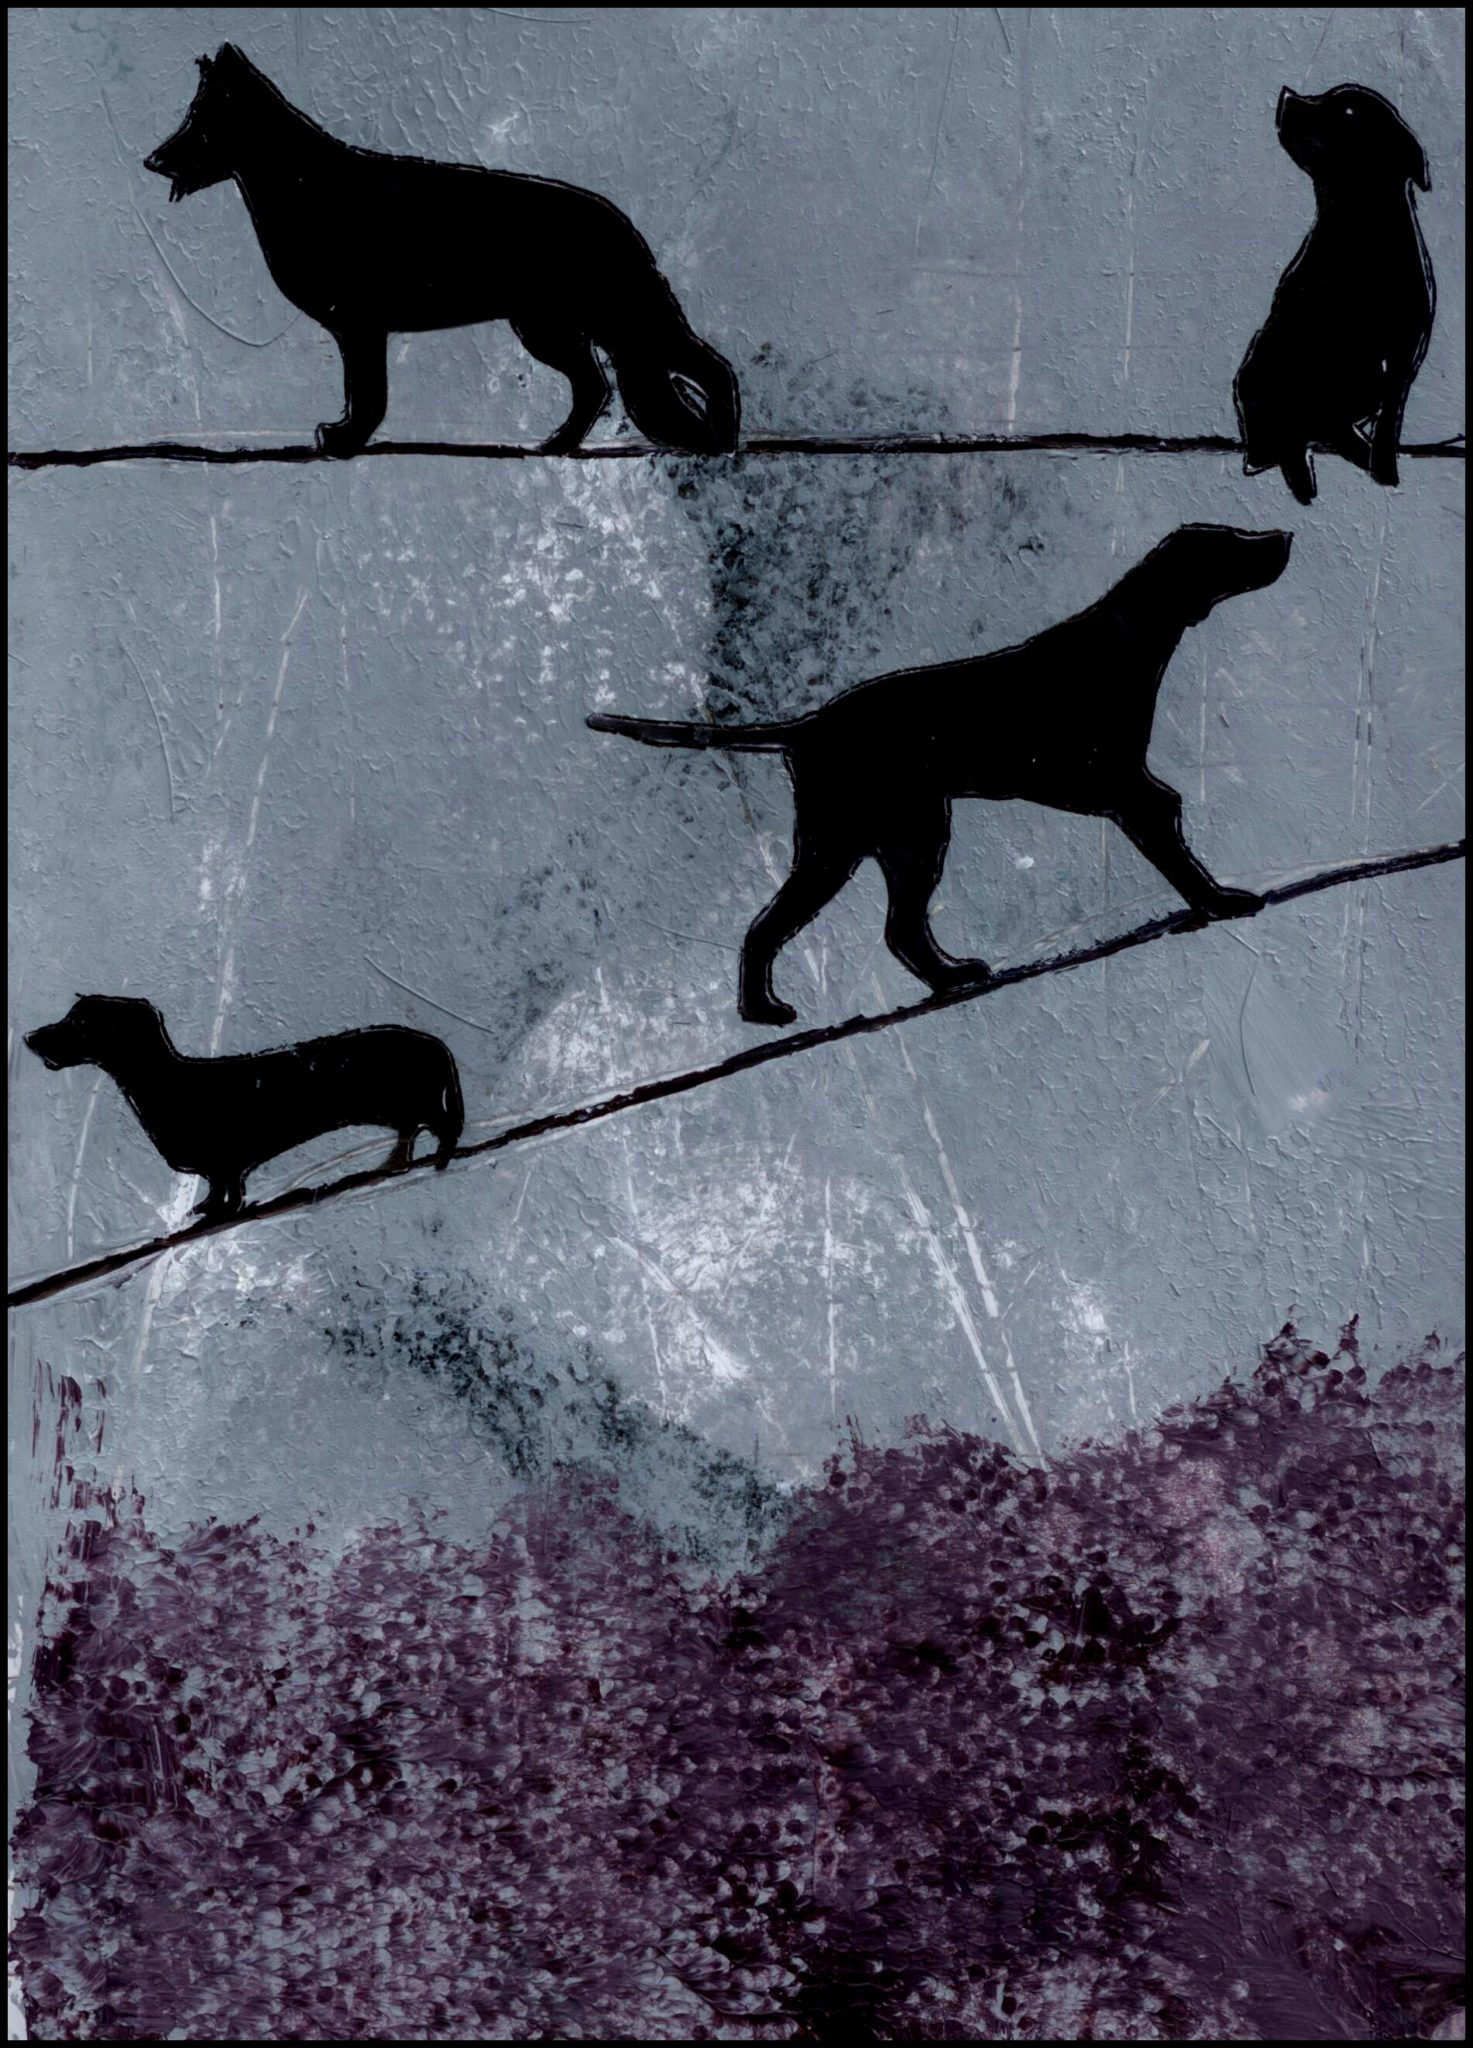 Dogs on a Wire, mixed media collage by Courtney Putnam